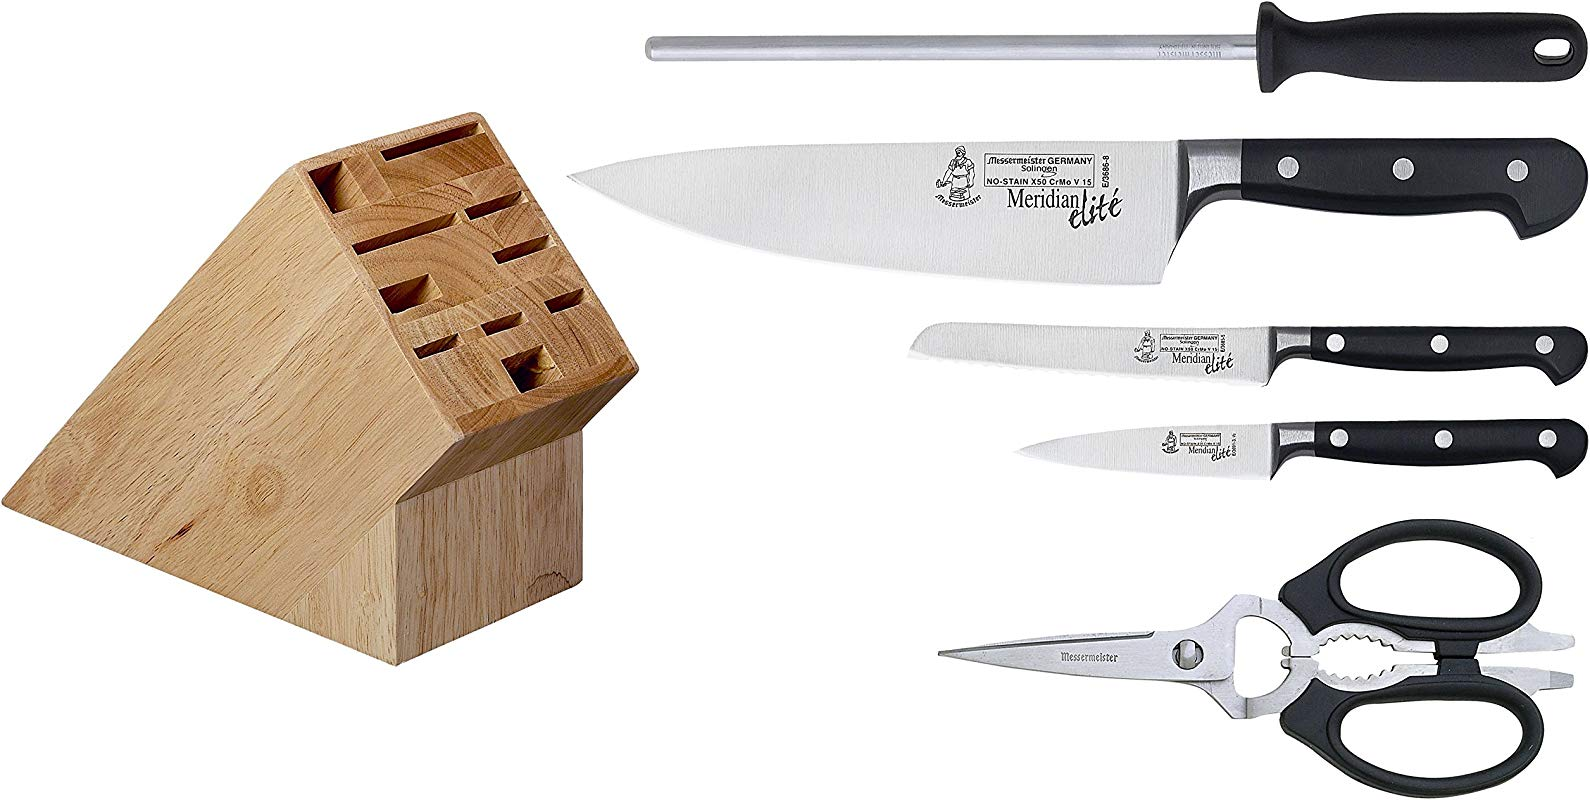 Messermeister Meridian Elite 6 Pc Initial Knife Block Set